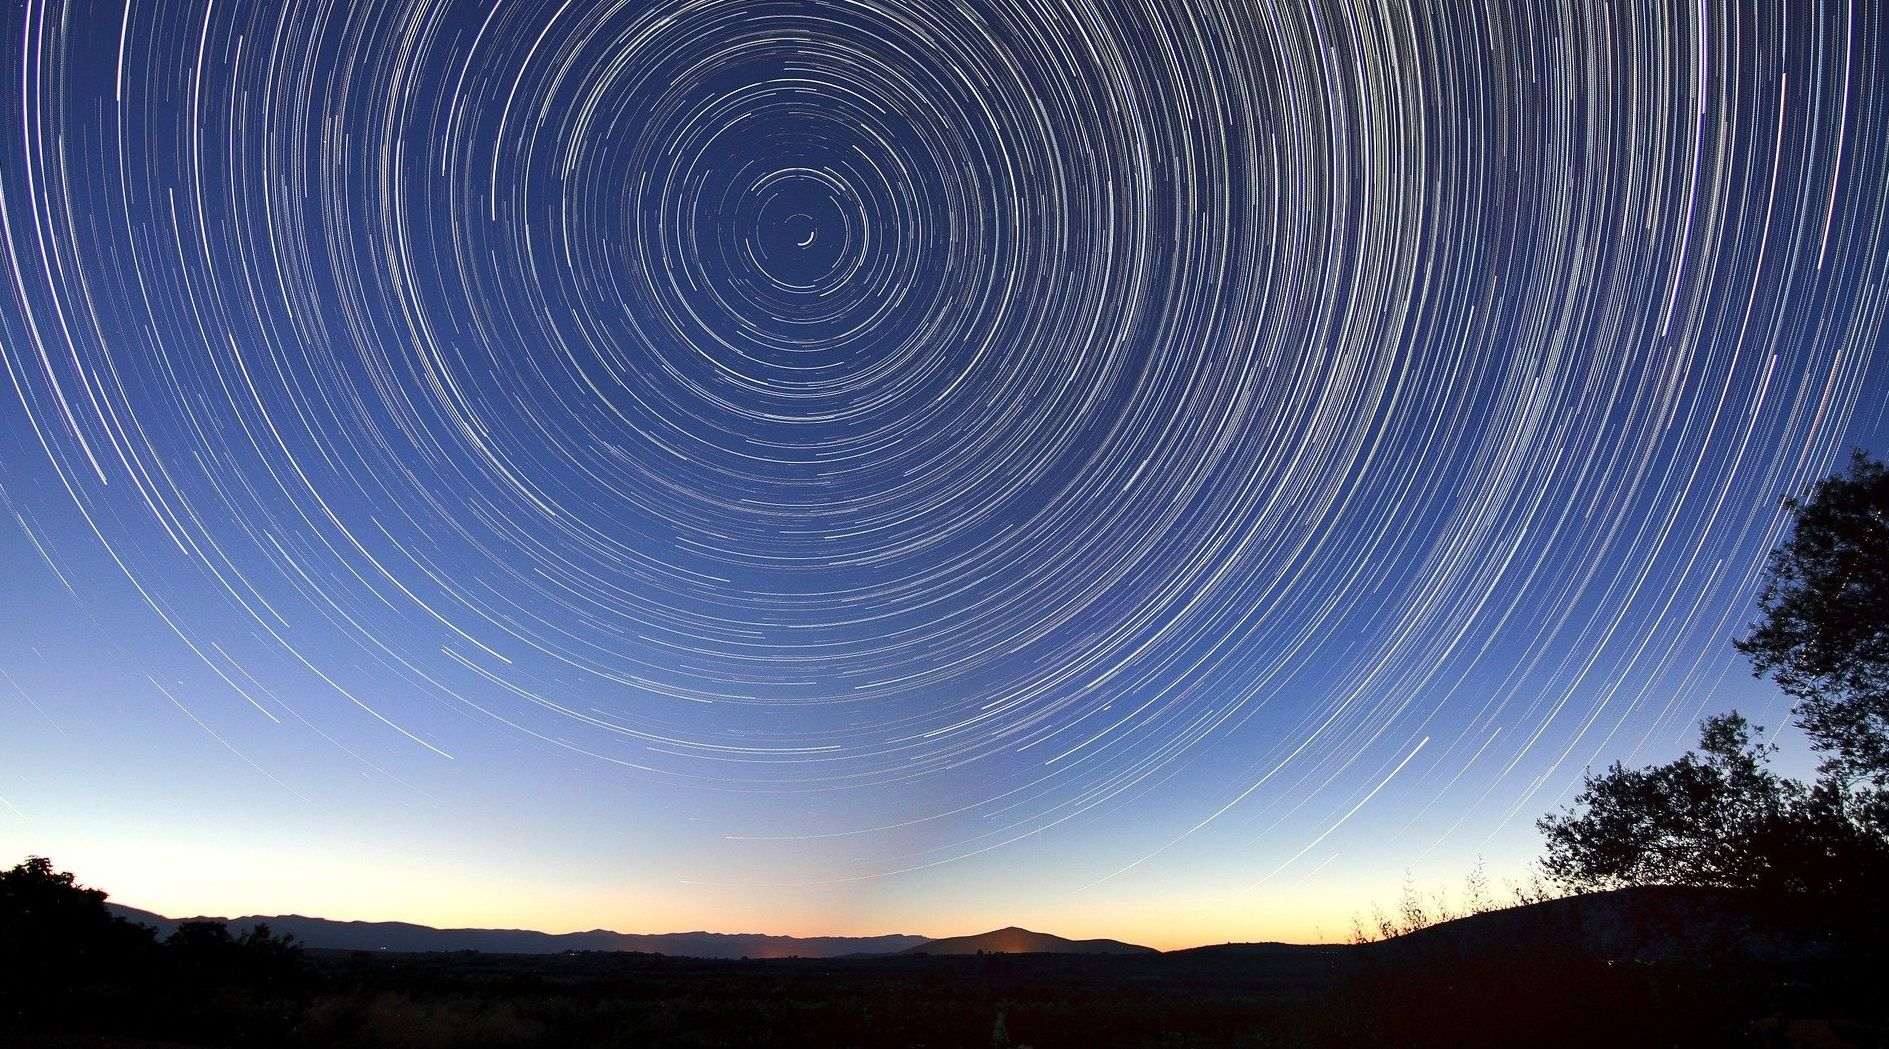 photo of star trails in the night sky